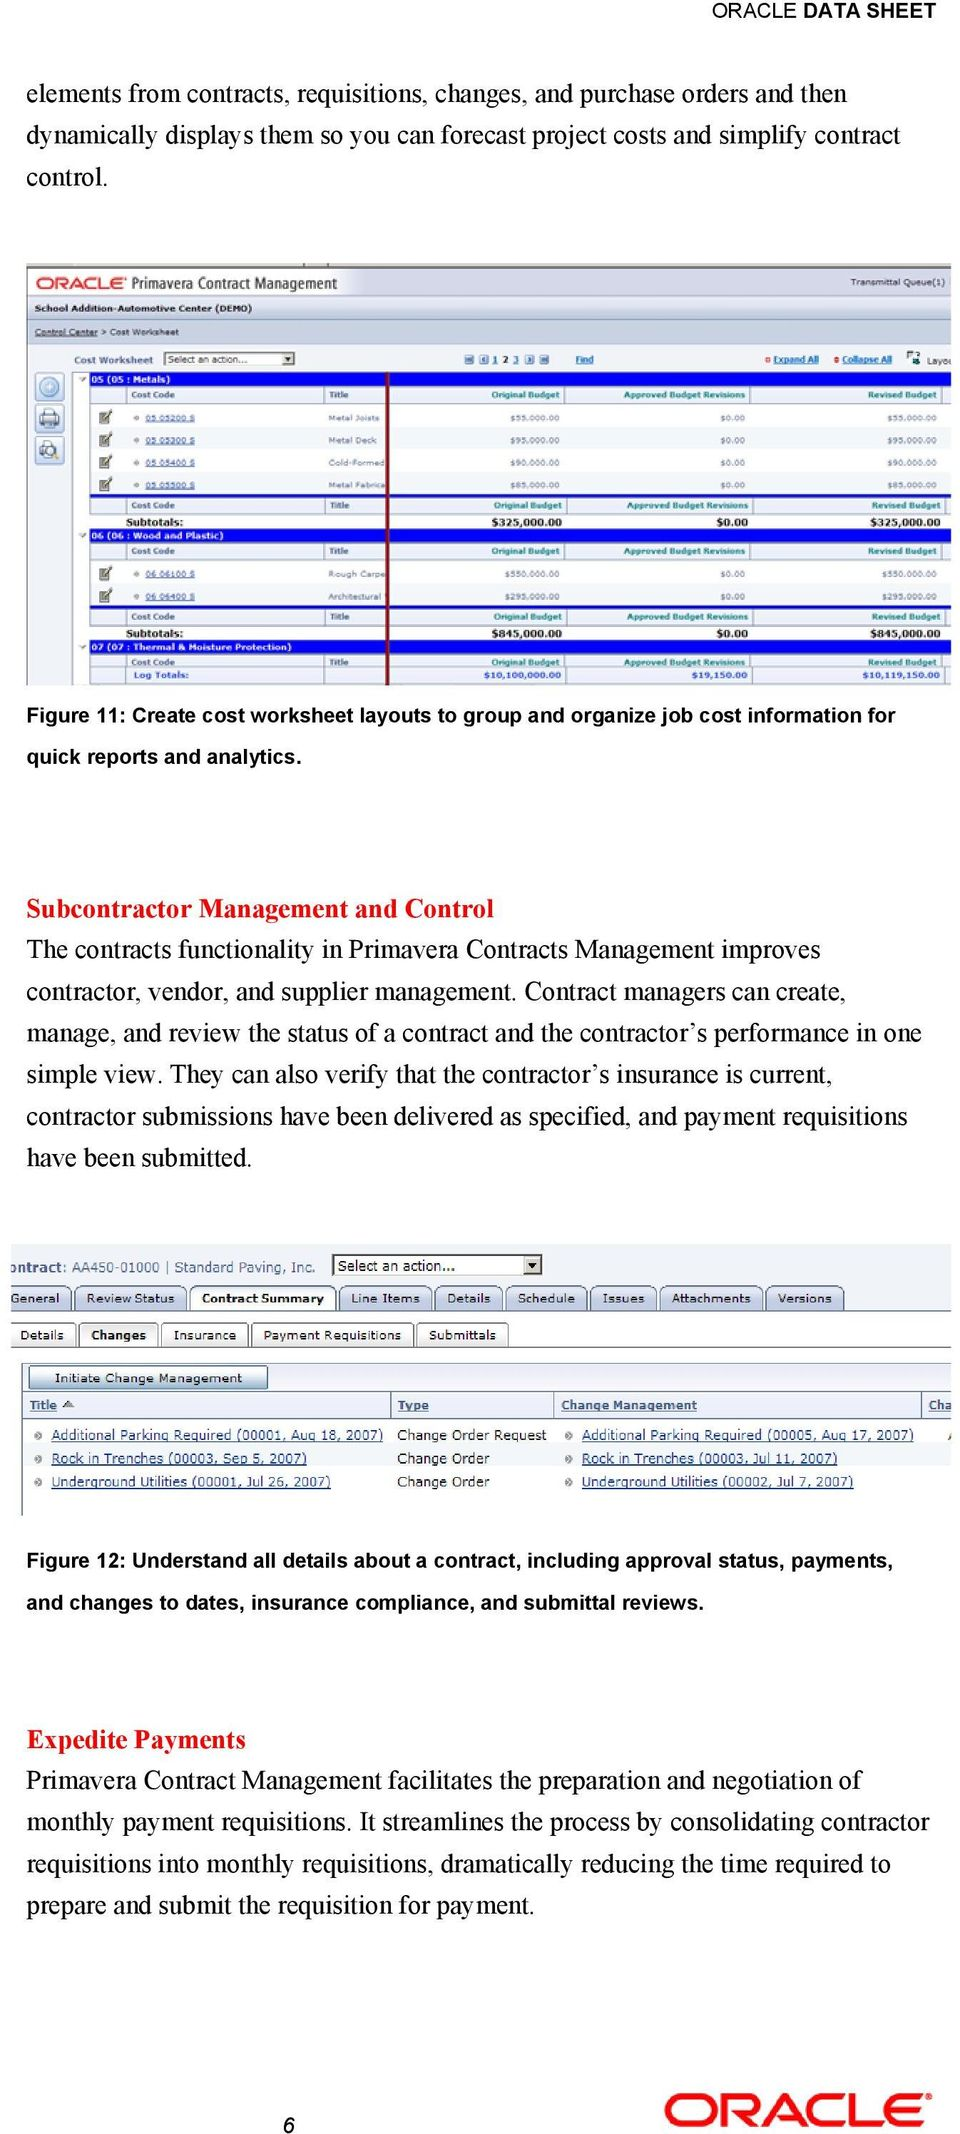 Subcontractor Management and Control The contracts functionality in Primavera Contracts Management improves contractor, vendor, and supplier management.